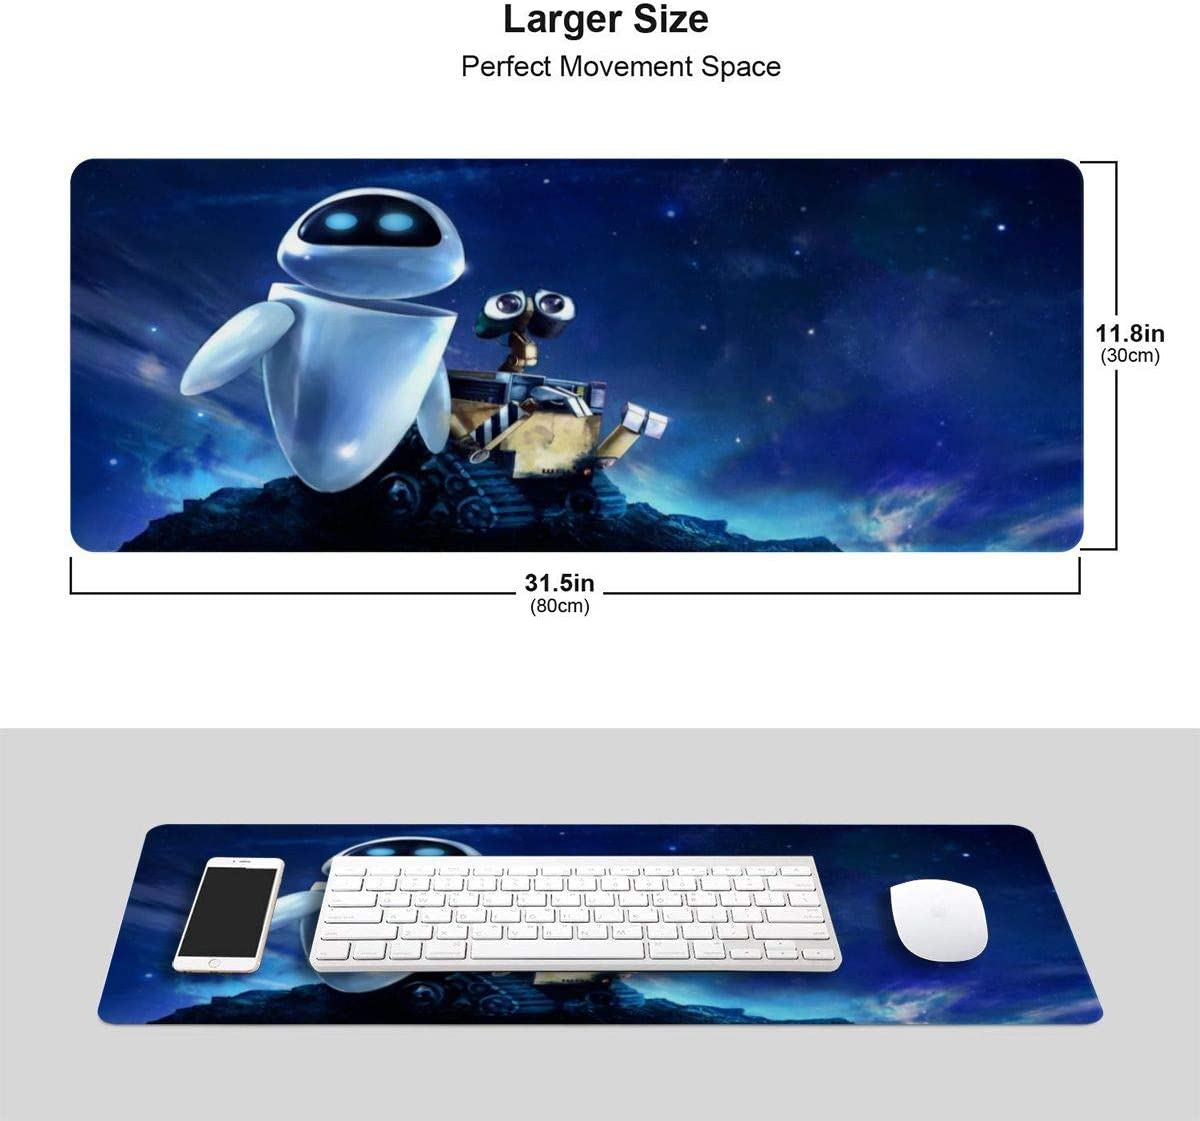 Wall.E Gaming Mouse Pad Rectangular Mouse Pads 12 X 31 Inch Non-Slip Rubber Electronic Sports Oversized Large Mouse Mat